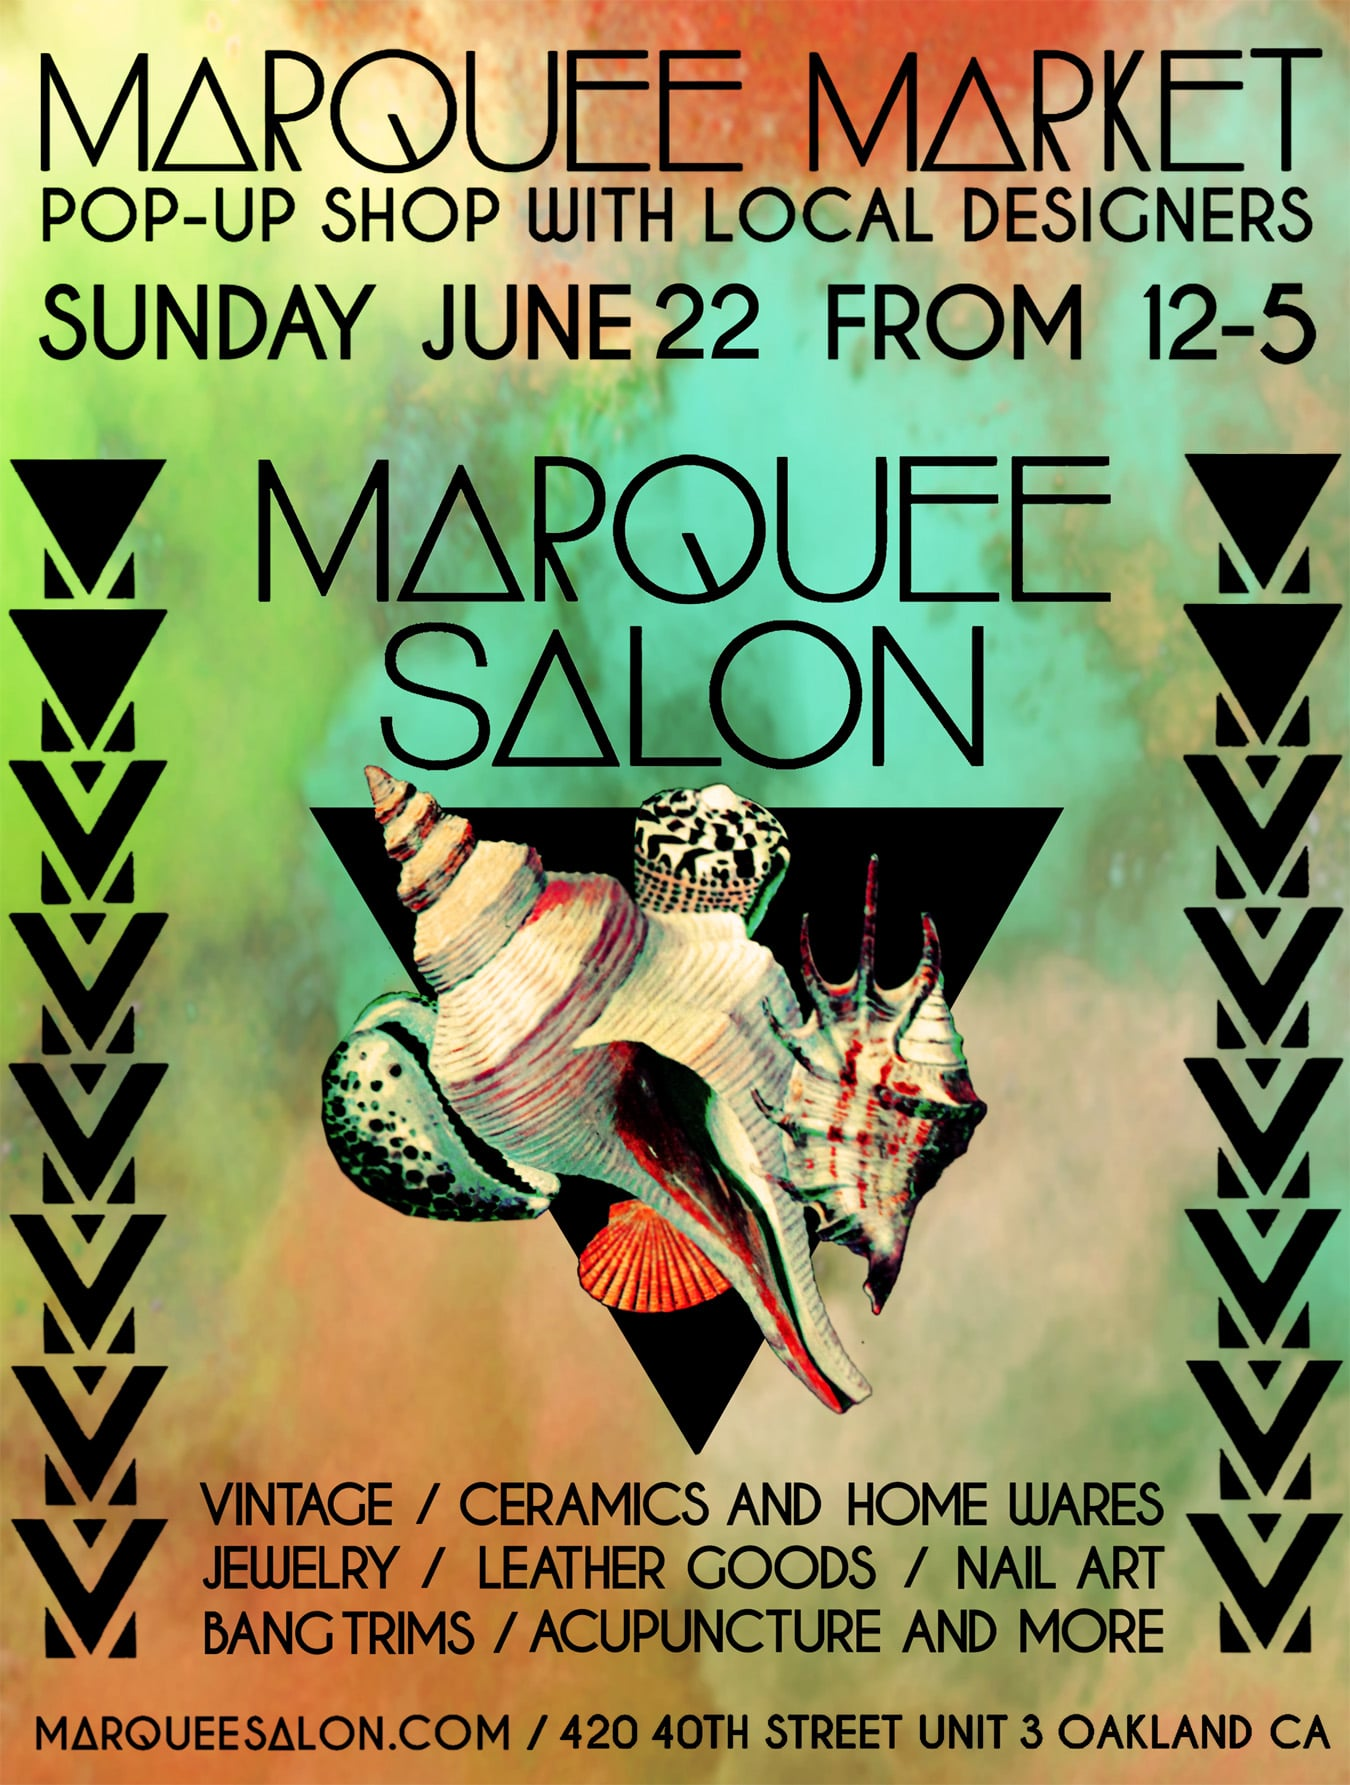 STARCADE DESIGNS FOR MARQUEE SALON / EVENT ADD, POSTER DESIGN / ©MARQUEE SALON              .